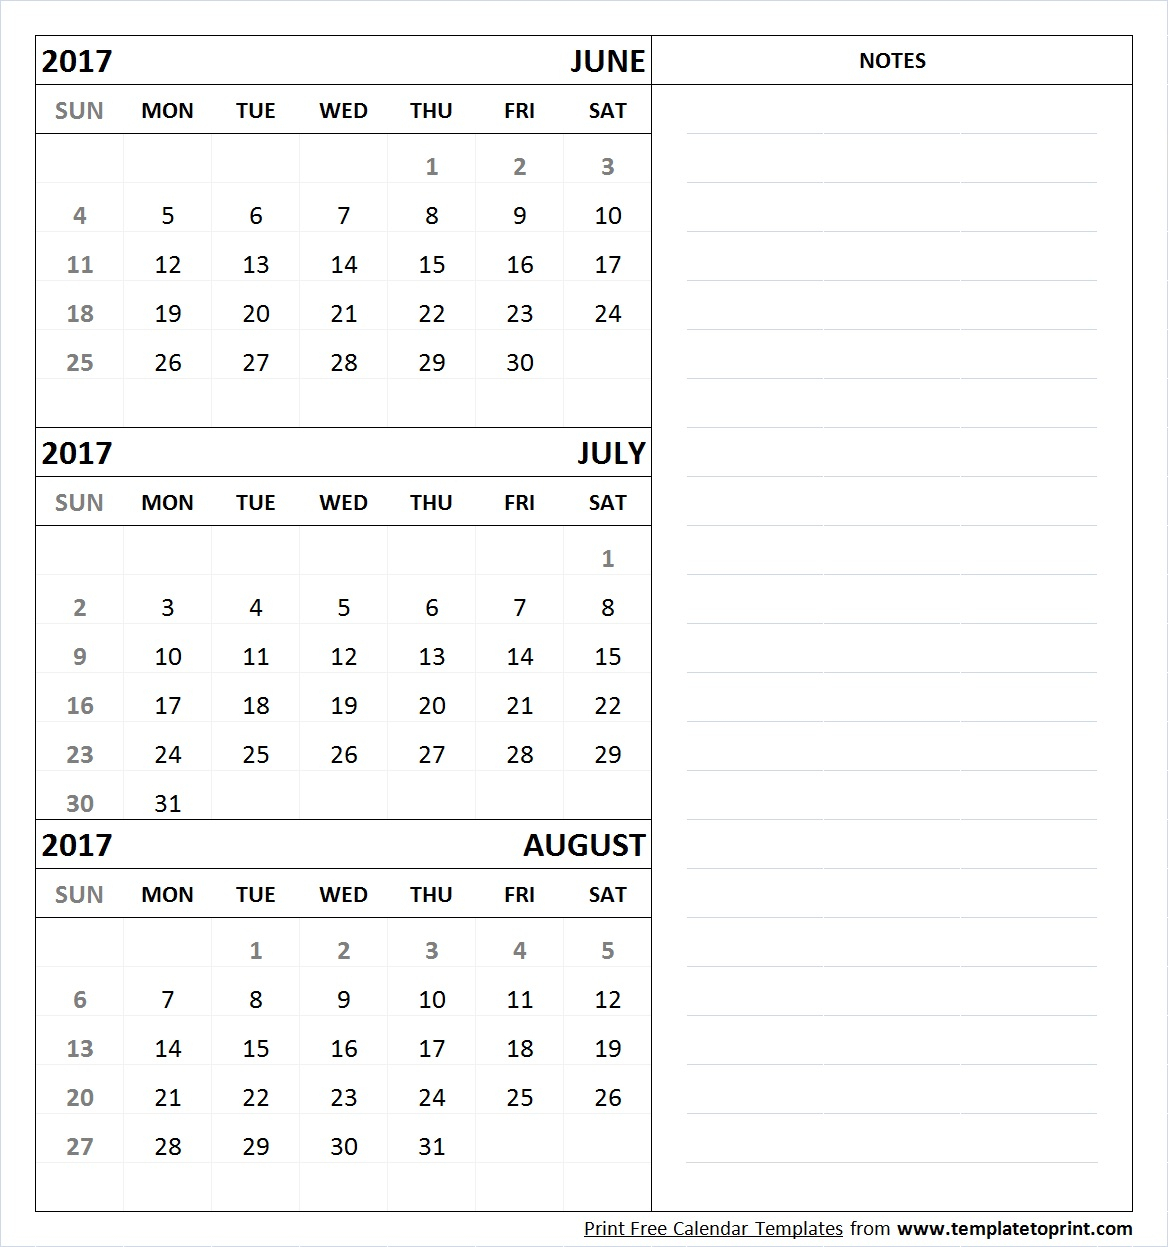 June July August 2017 Calendar Printable Template Pdf inside Blank June July August Calendar